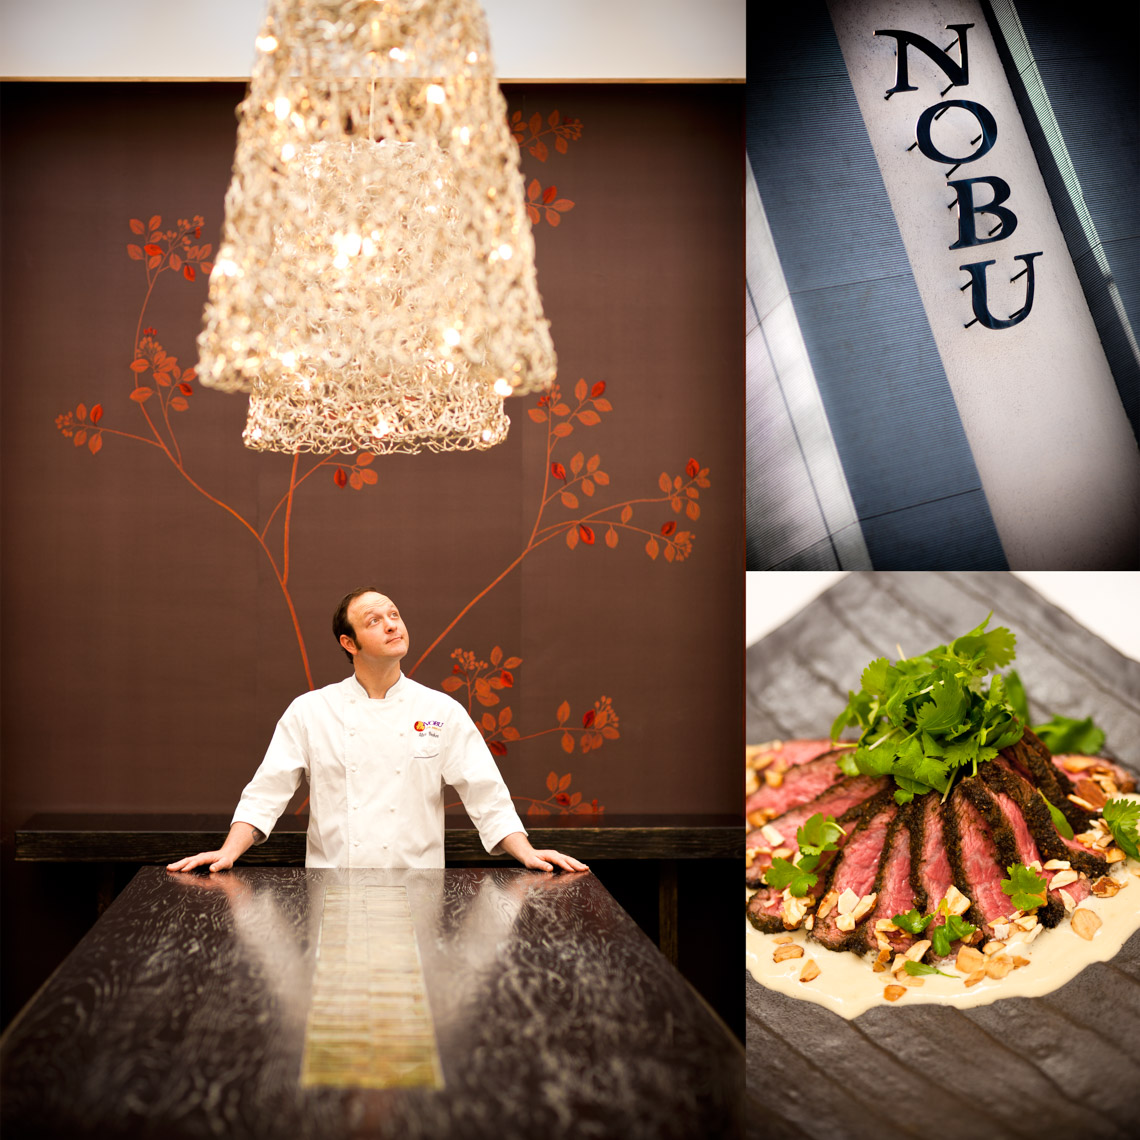 Los Angeles Photographer | Dana Hursey Photography | Top Chef Photography | Alex Becker - Nobu